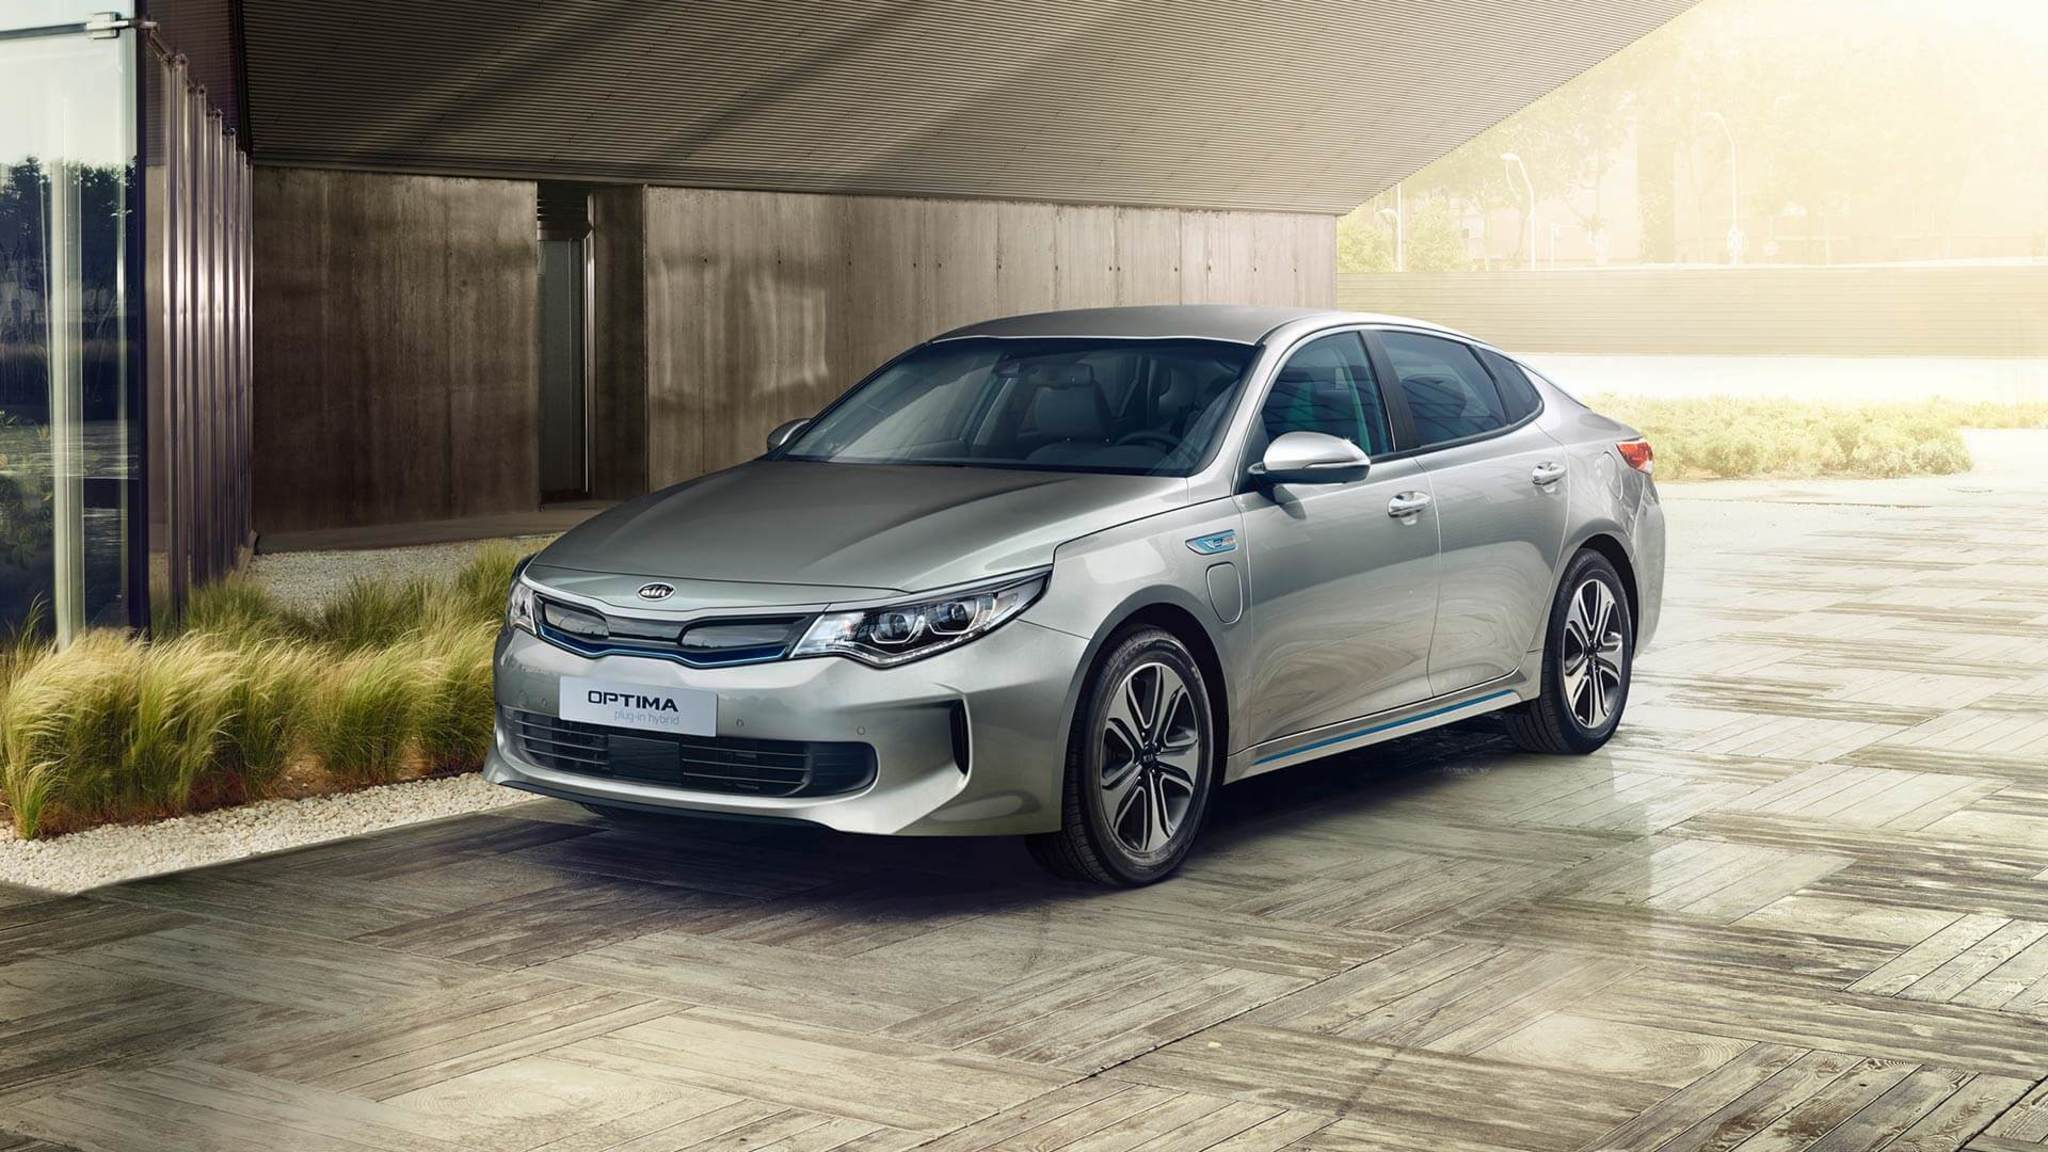 OPTIMA PHEV DISAIN